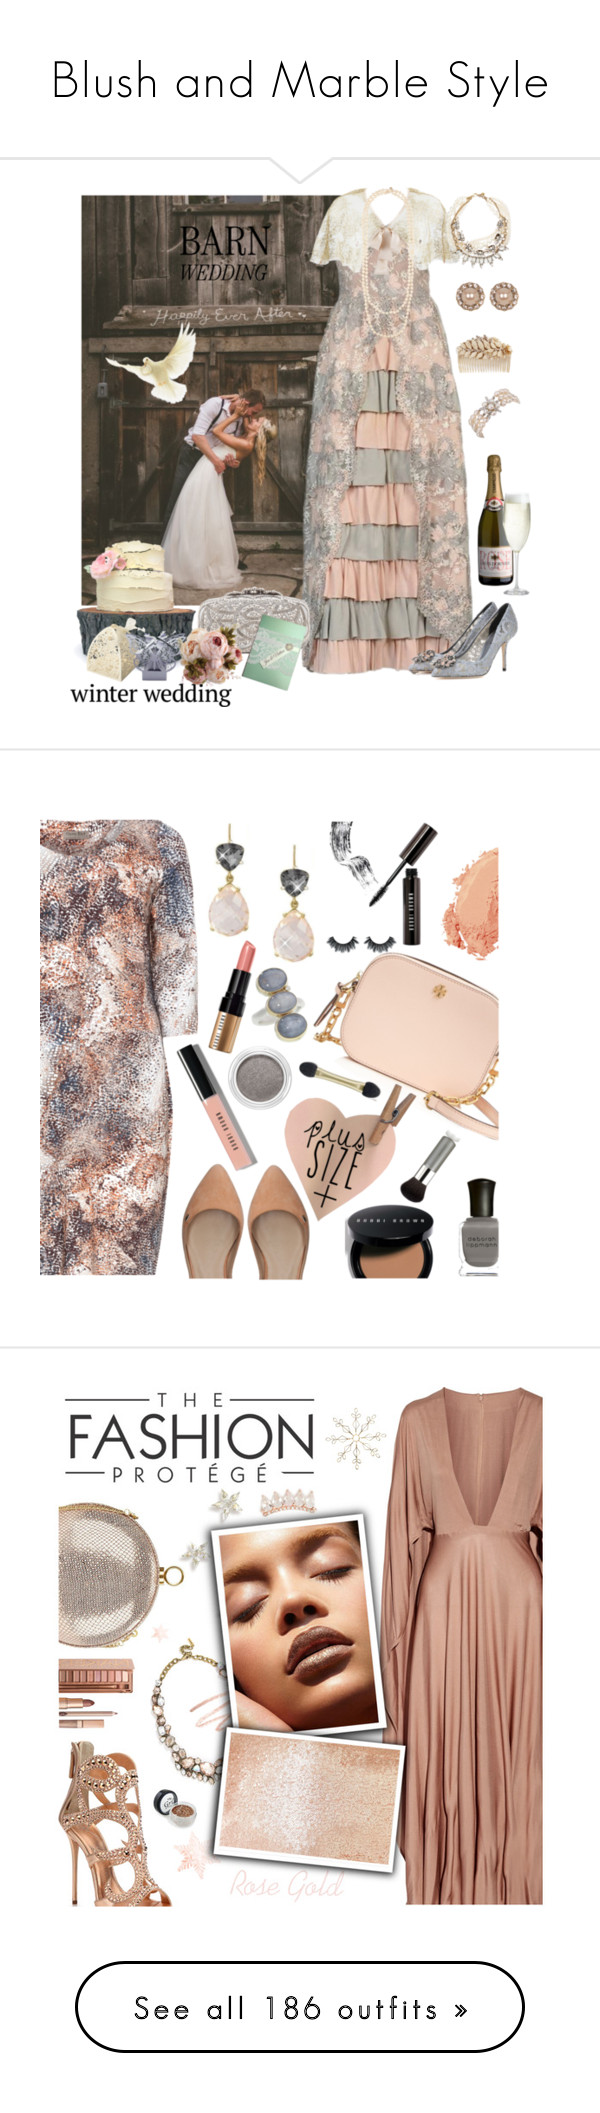 """Blush and Marble Style"" by yours-styling-best-friend ❤ liked on Polyvore featuring Gilda & Pearl, Dolce&Gabbana, Oscar de la Renta, Lulu Frost, Marchesa, Miriam Haskell, Chanel, Crate and Barrel, vintage and Open End"